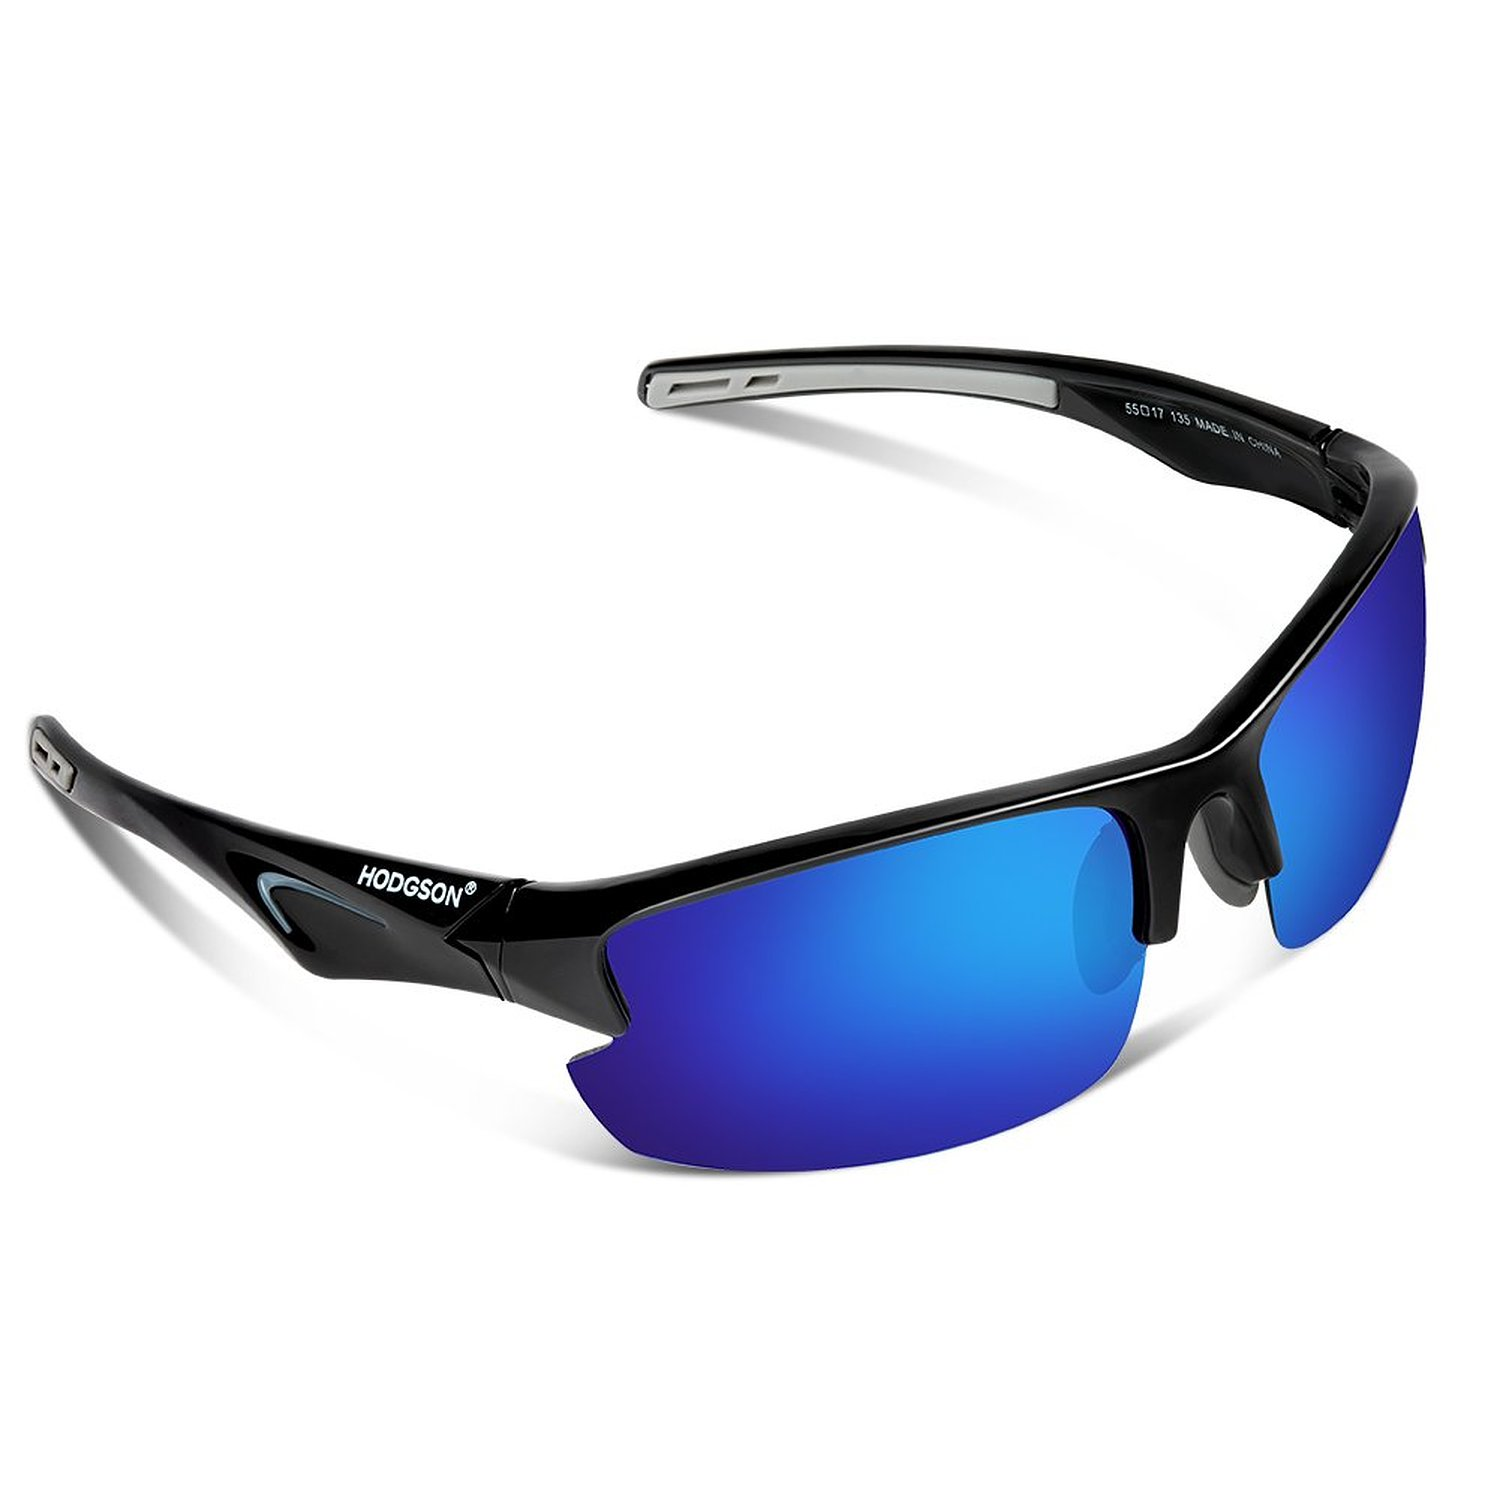 e68988825ce Get Quotations · HODGSON Polarized Sunglasses for Men Women